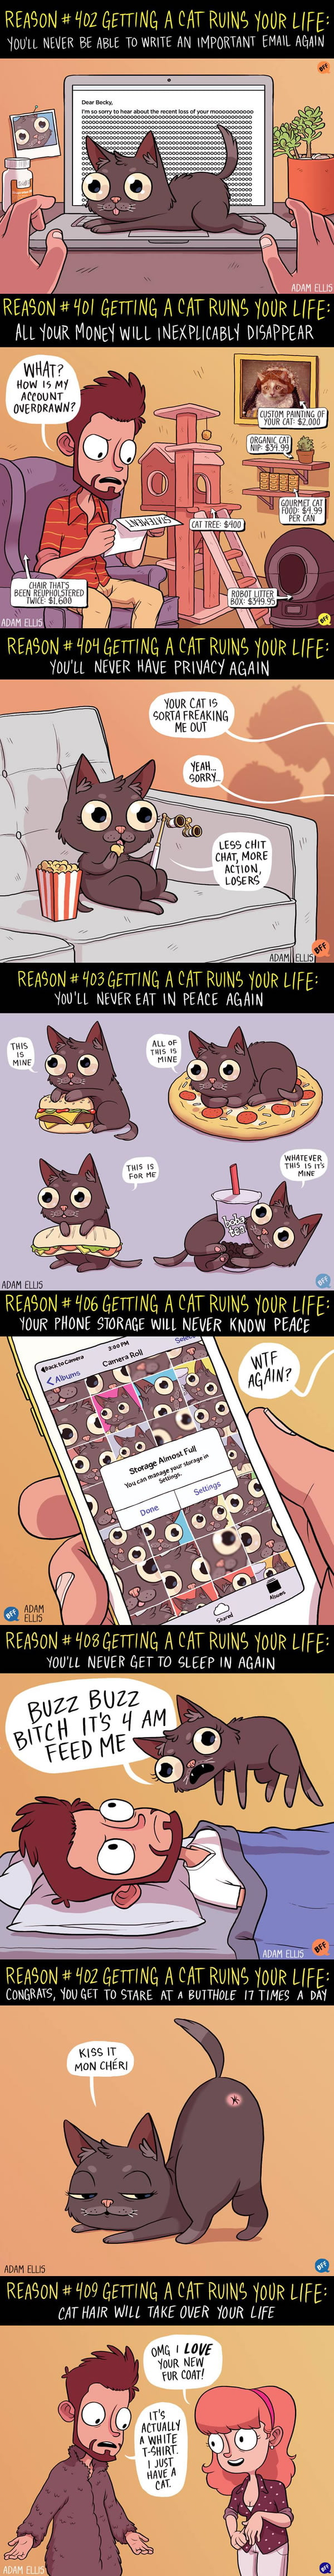 8 Ways Getting A Cat Ruins Your Life (By Adam Ellis)